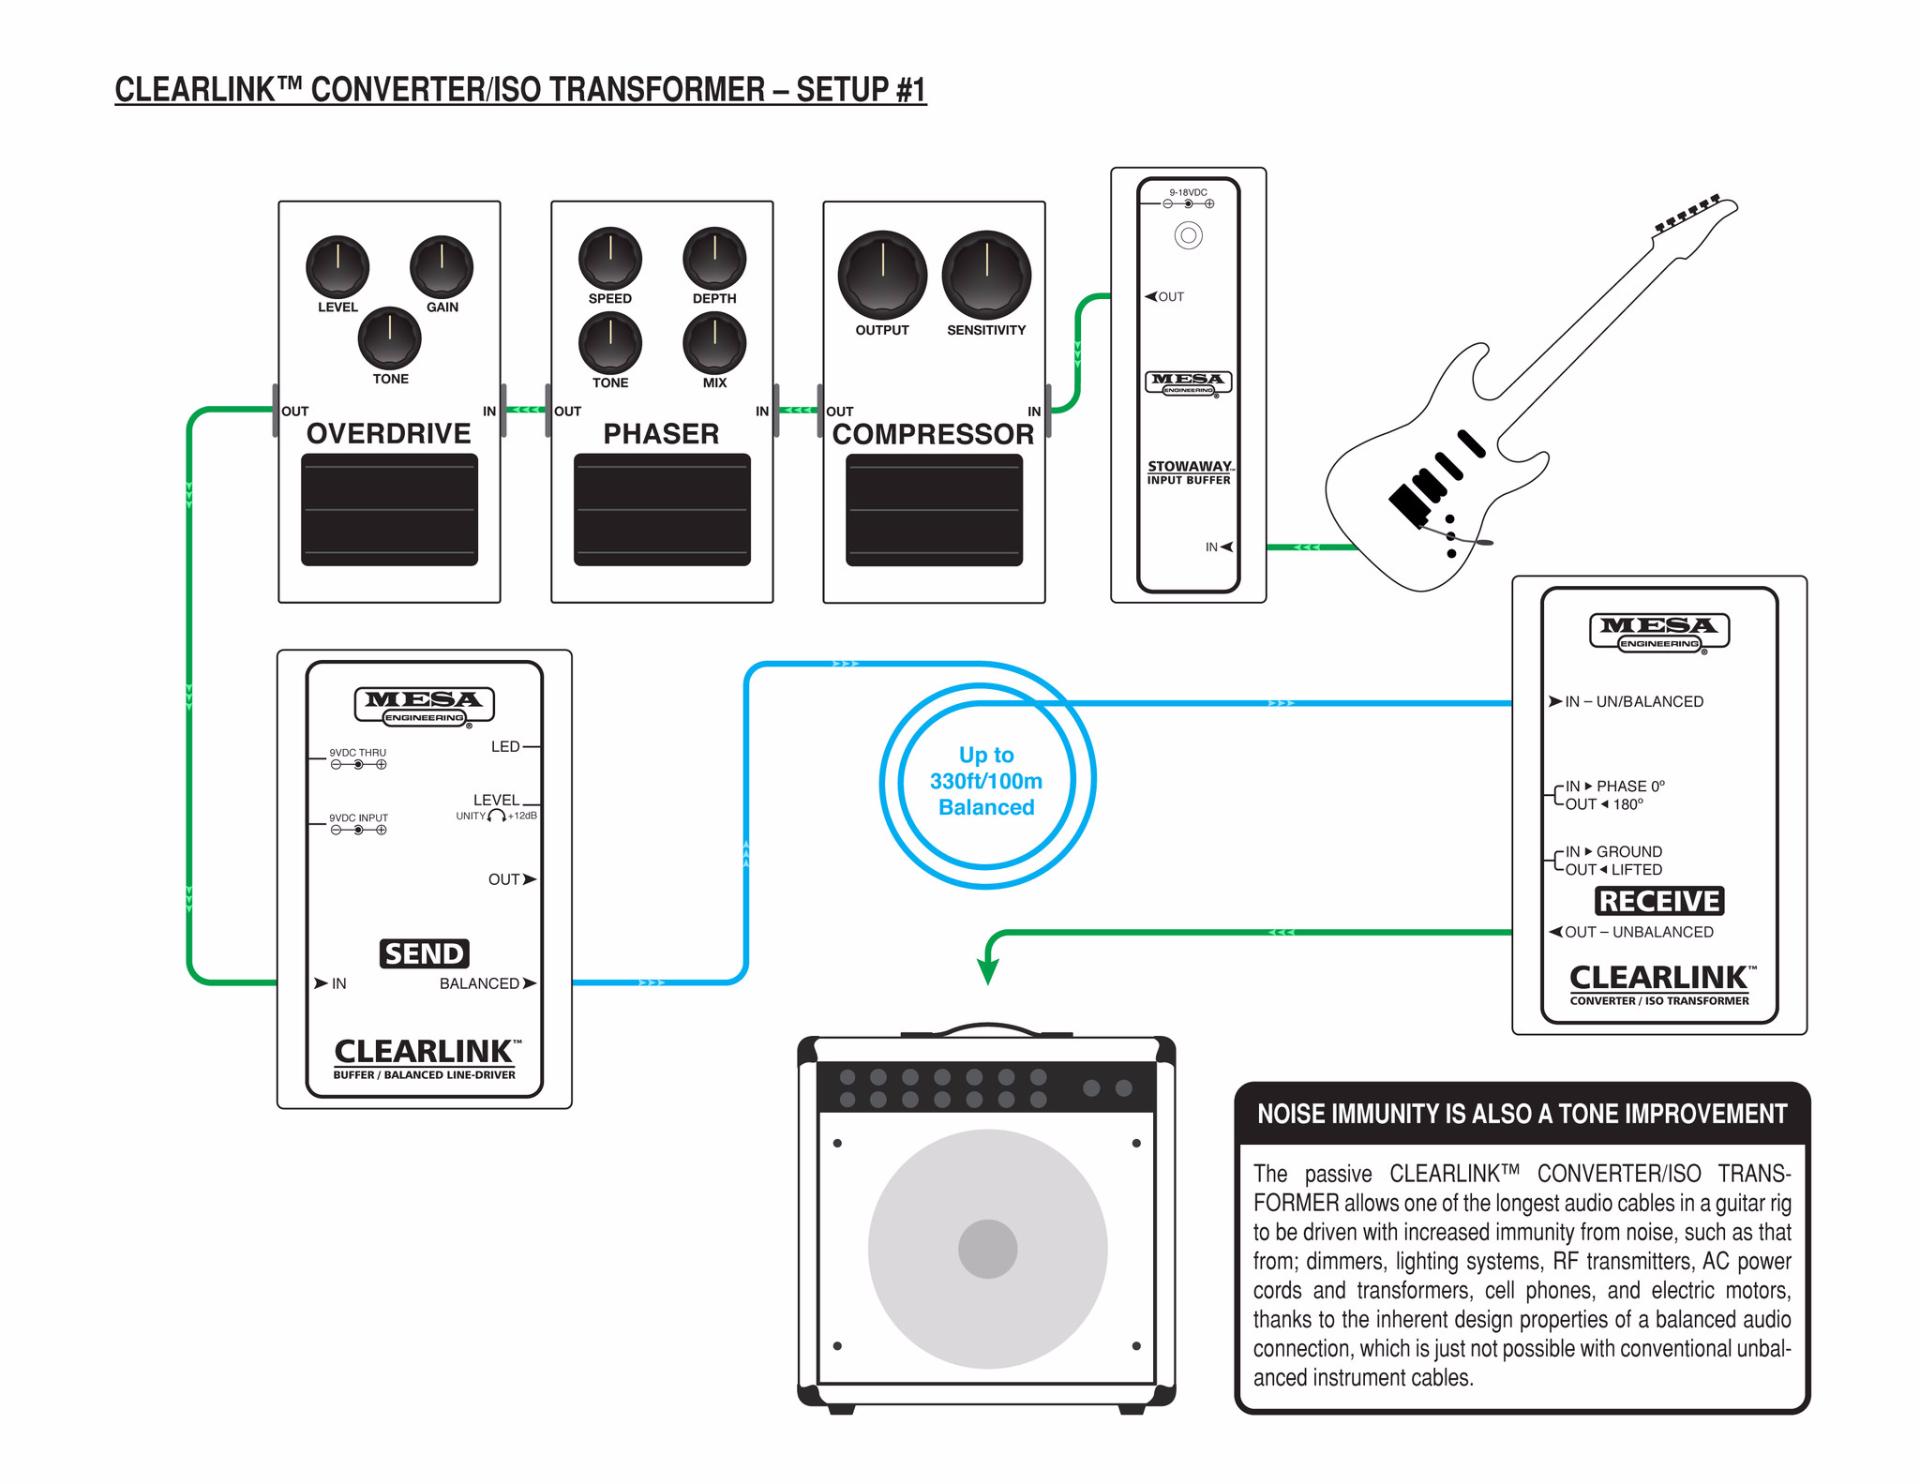 Can I use the CLEARLINK™ CONVERTER/ISO TRANSFORMER as a DI